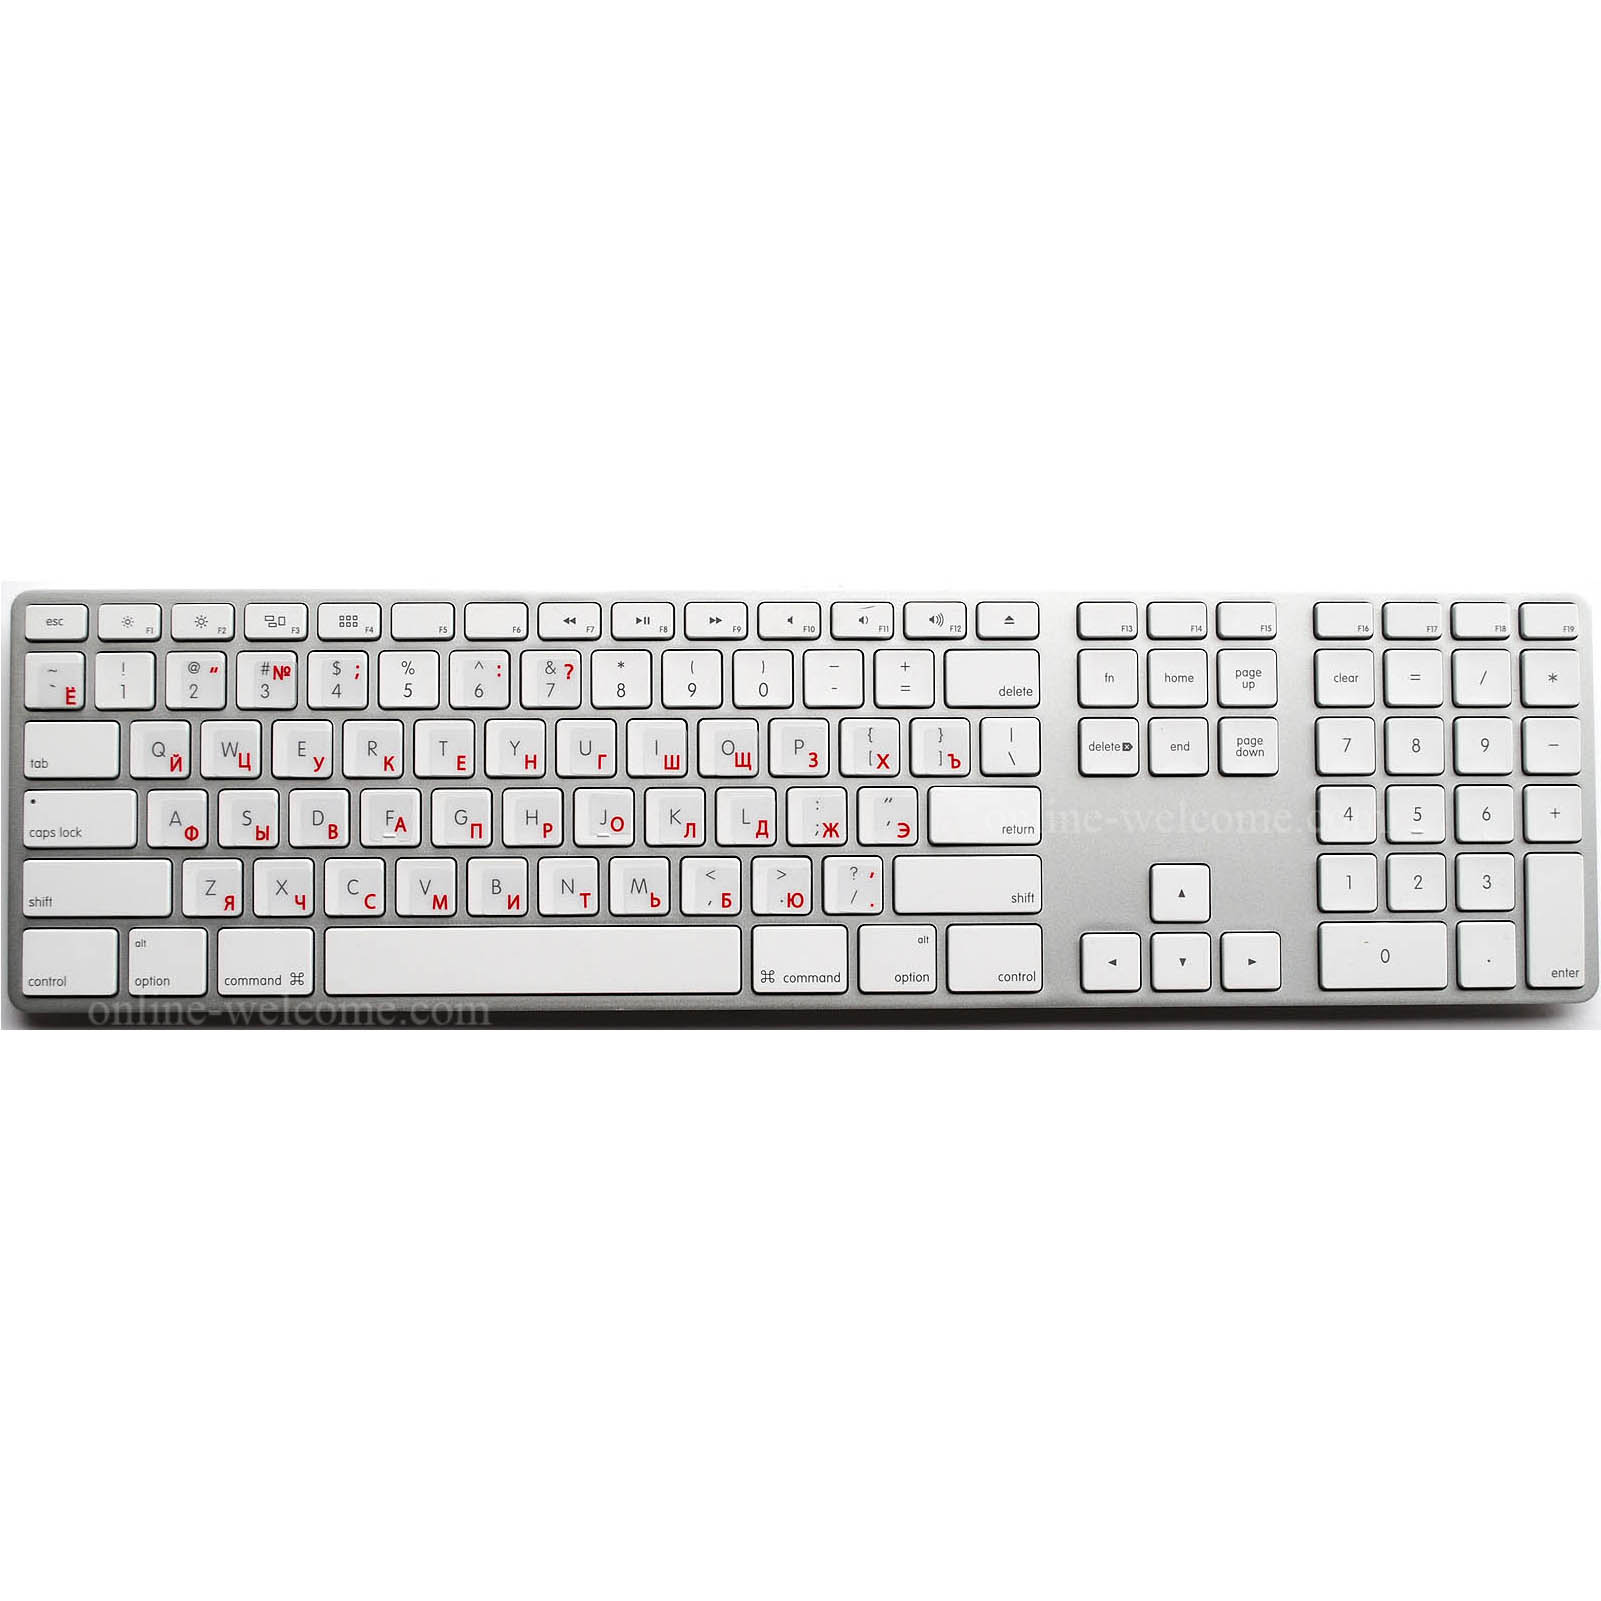 Russian Keyboard Stickers Transparent Red Letters Online Welcome